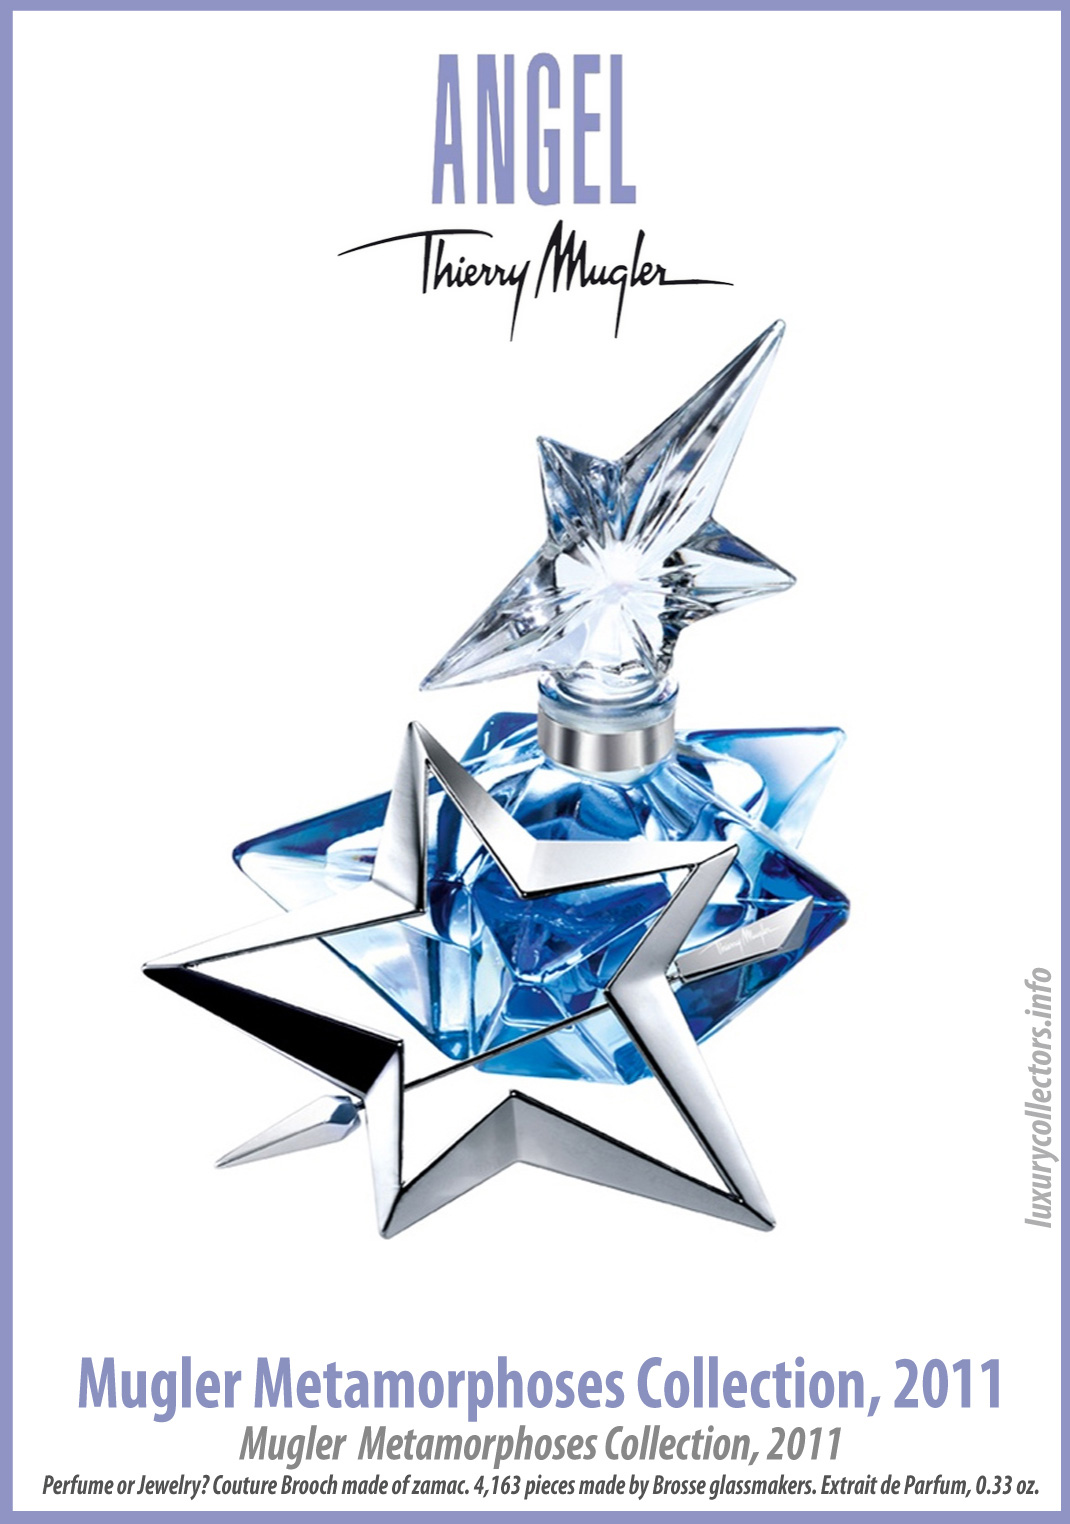 Thierry Mugler Angel 20 Years Perfume Collector's Limited Edition Bottle 2011 Metamorphoses